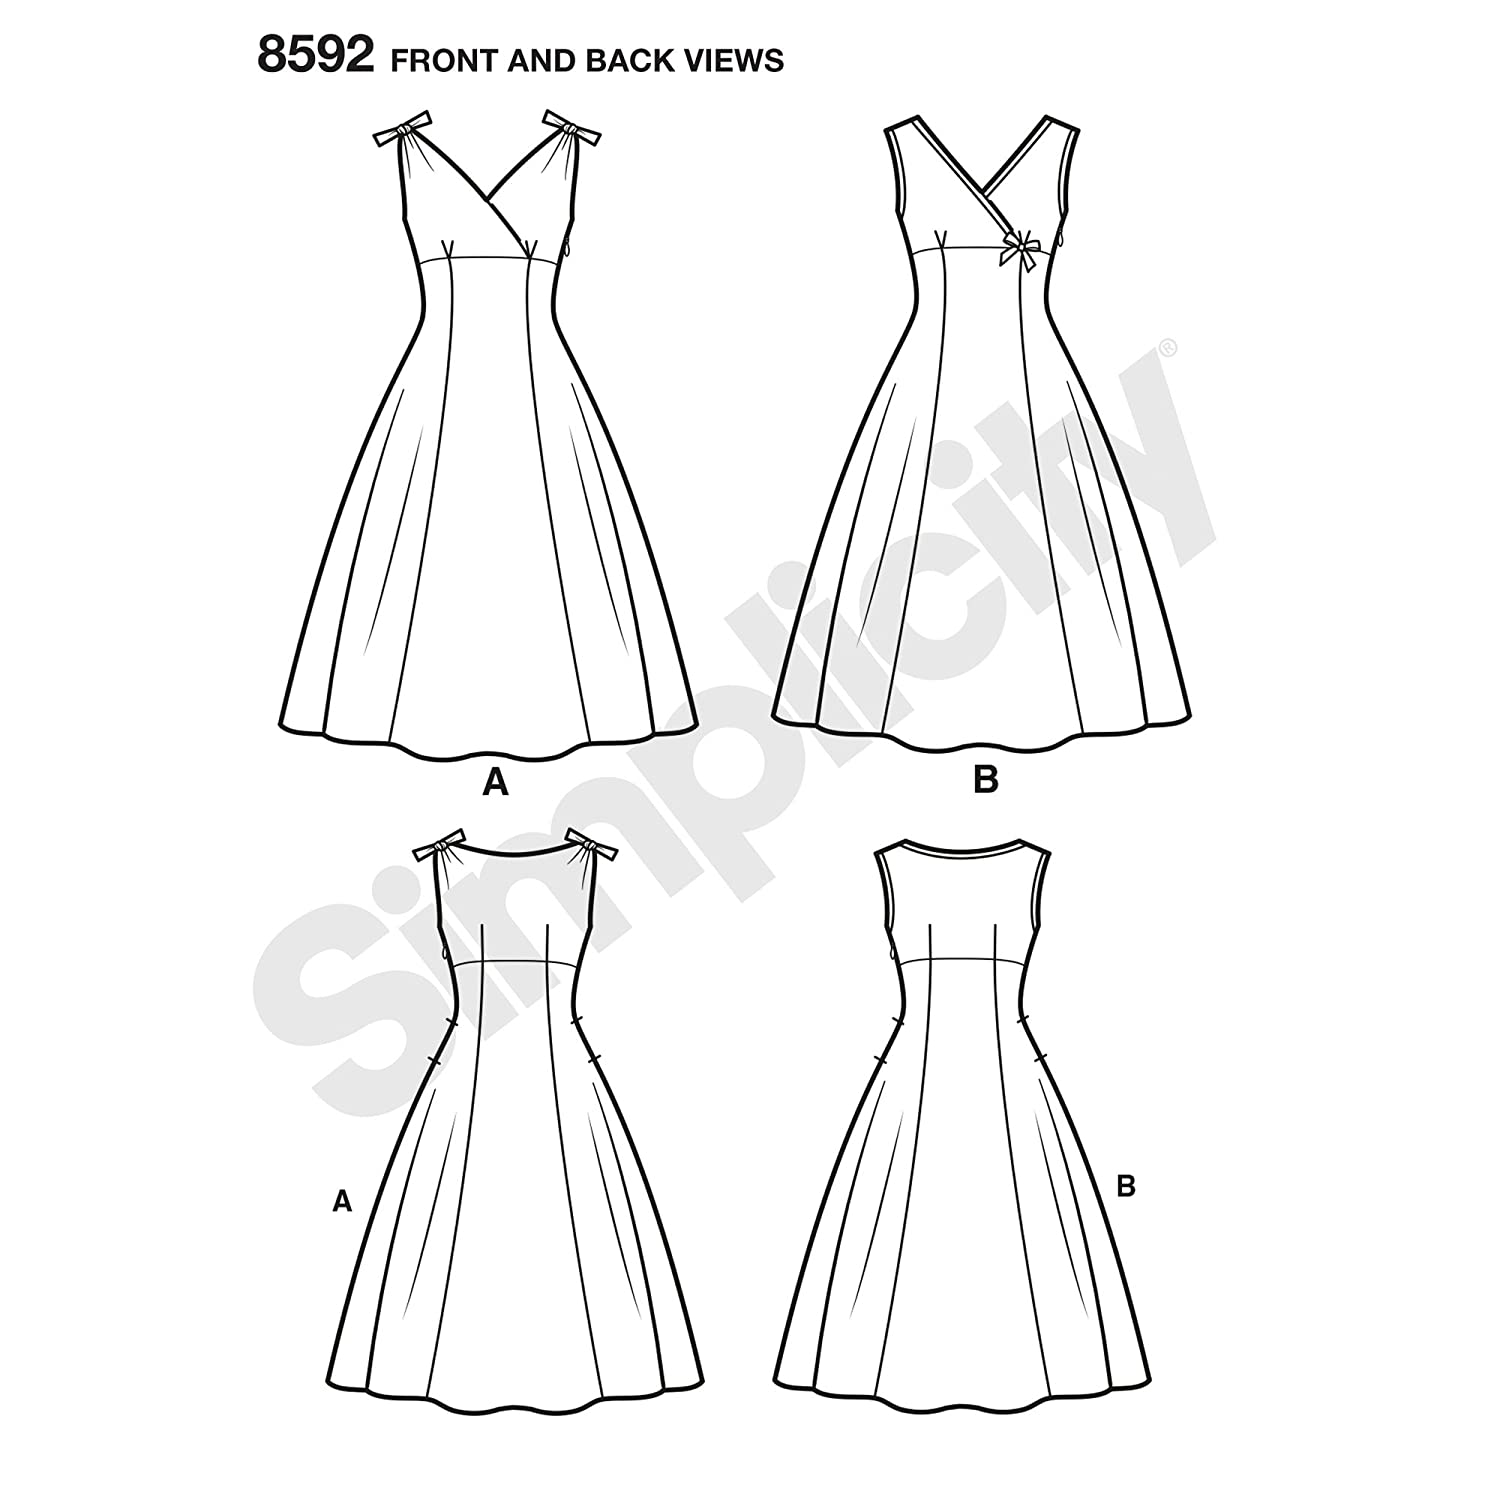 Amazon.com: Simplicity Vintage US8592BB Sewing Pattern Dresses BB (20W-28W) TAN: Arts, Crafts & Sewing